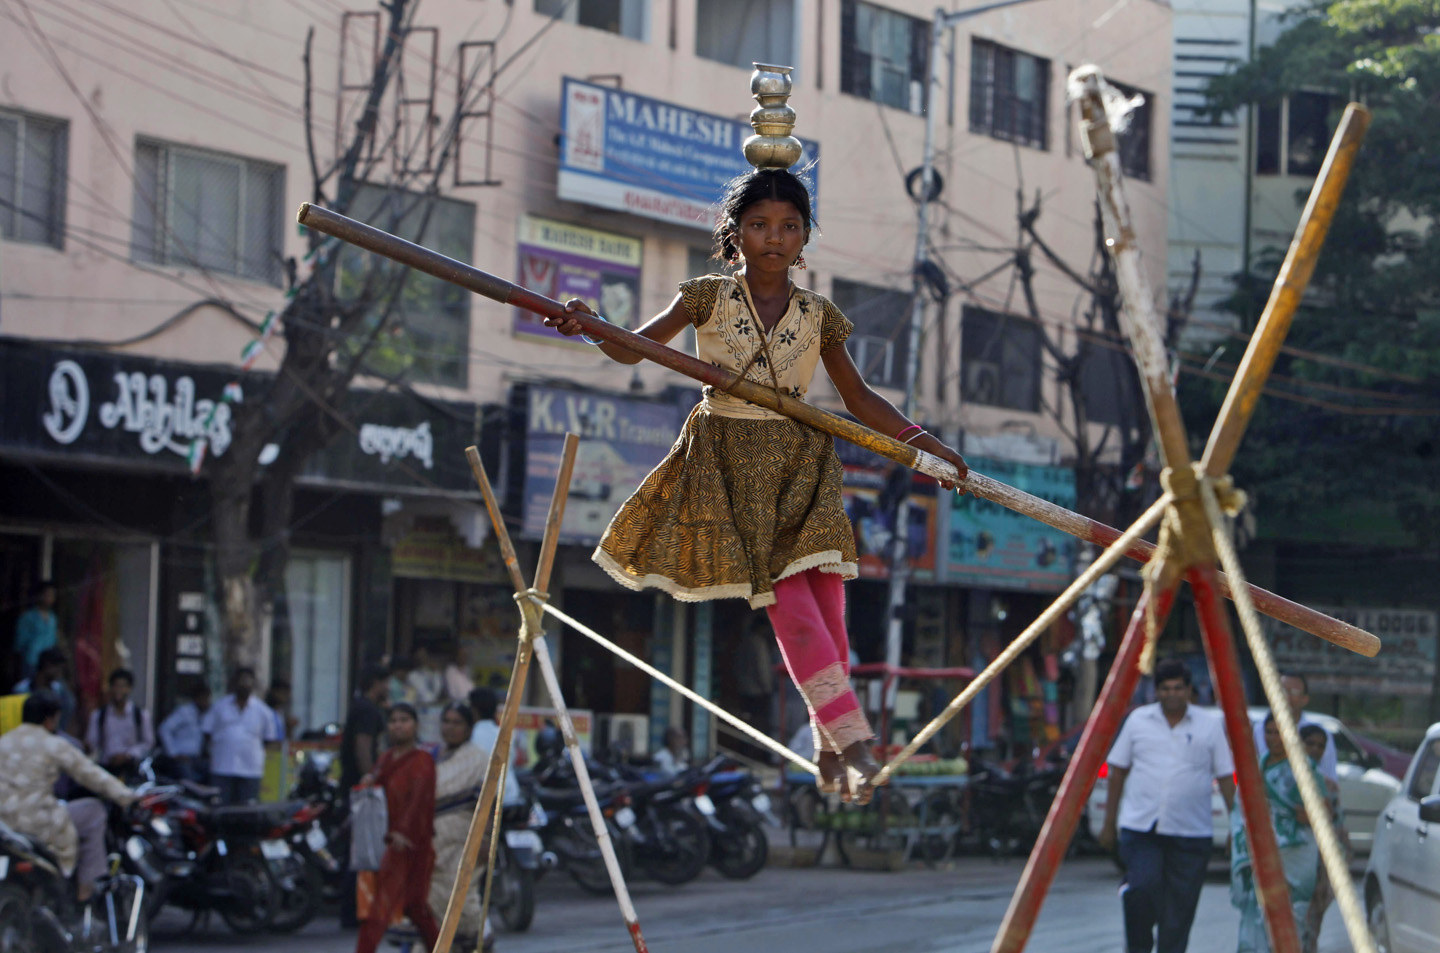 A young girl performs a stunt on a tightrope in the city of Hyderabad (Photo- Mahesh Kumar/Associated Press)